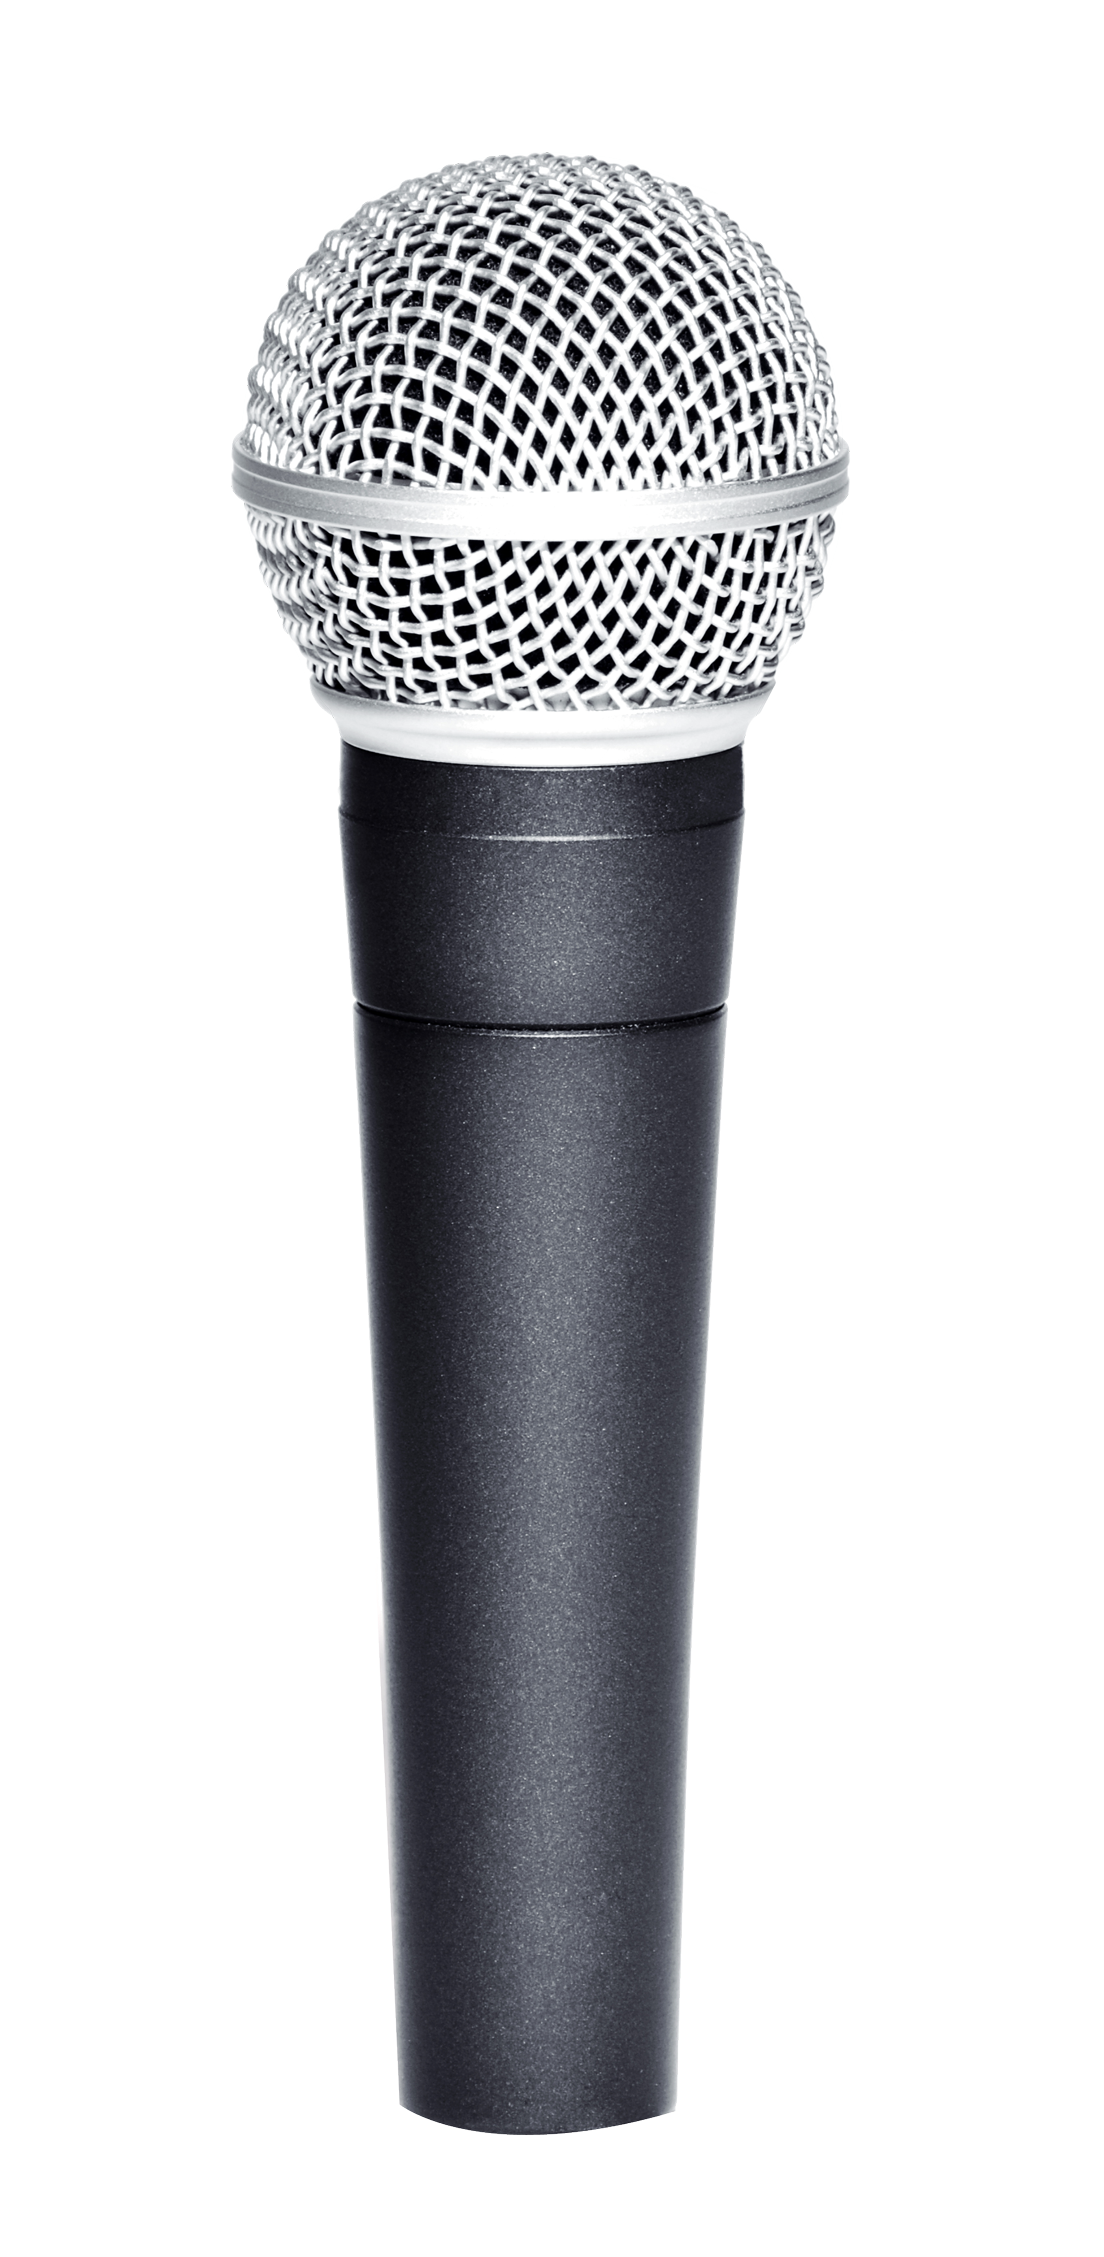 microphone transparent Microphone images transparent free download png